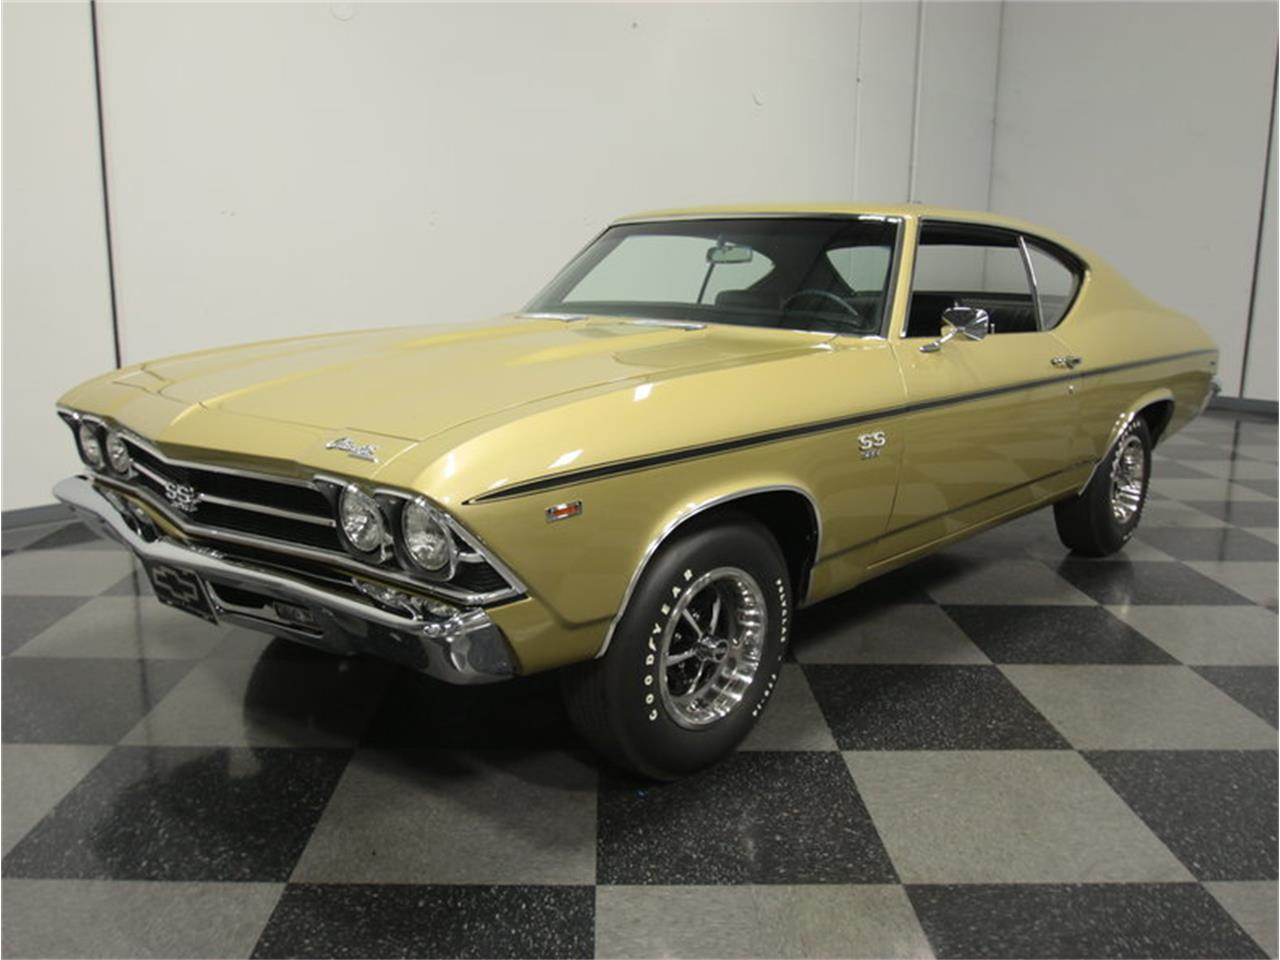 1969 chevrolet chevelle ss 396 l78 for sale cc 919351 - 69 chevelle ss 396 images ...